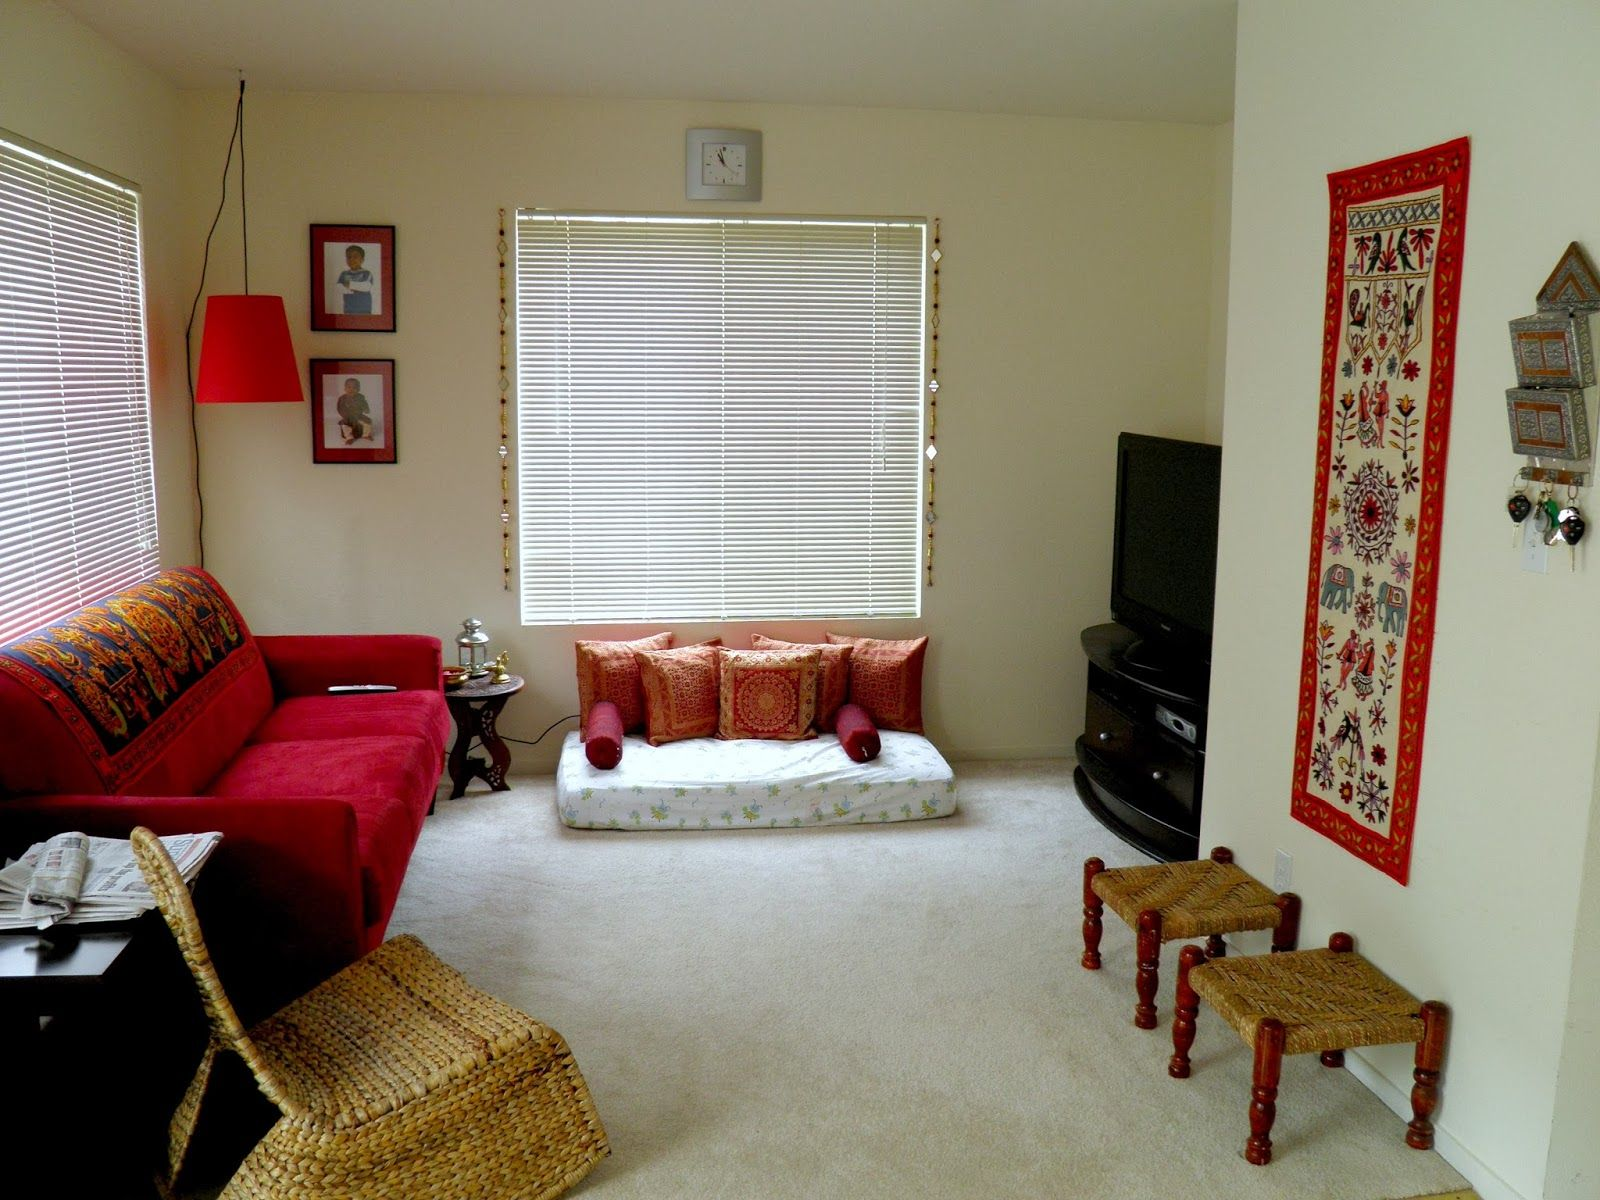 captivating indian small living rooms decorating ideas | Small little tweaks makes all the difference!: FAMILY ROOM